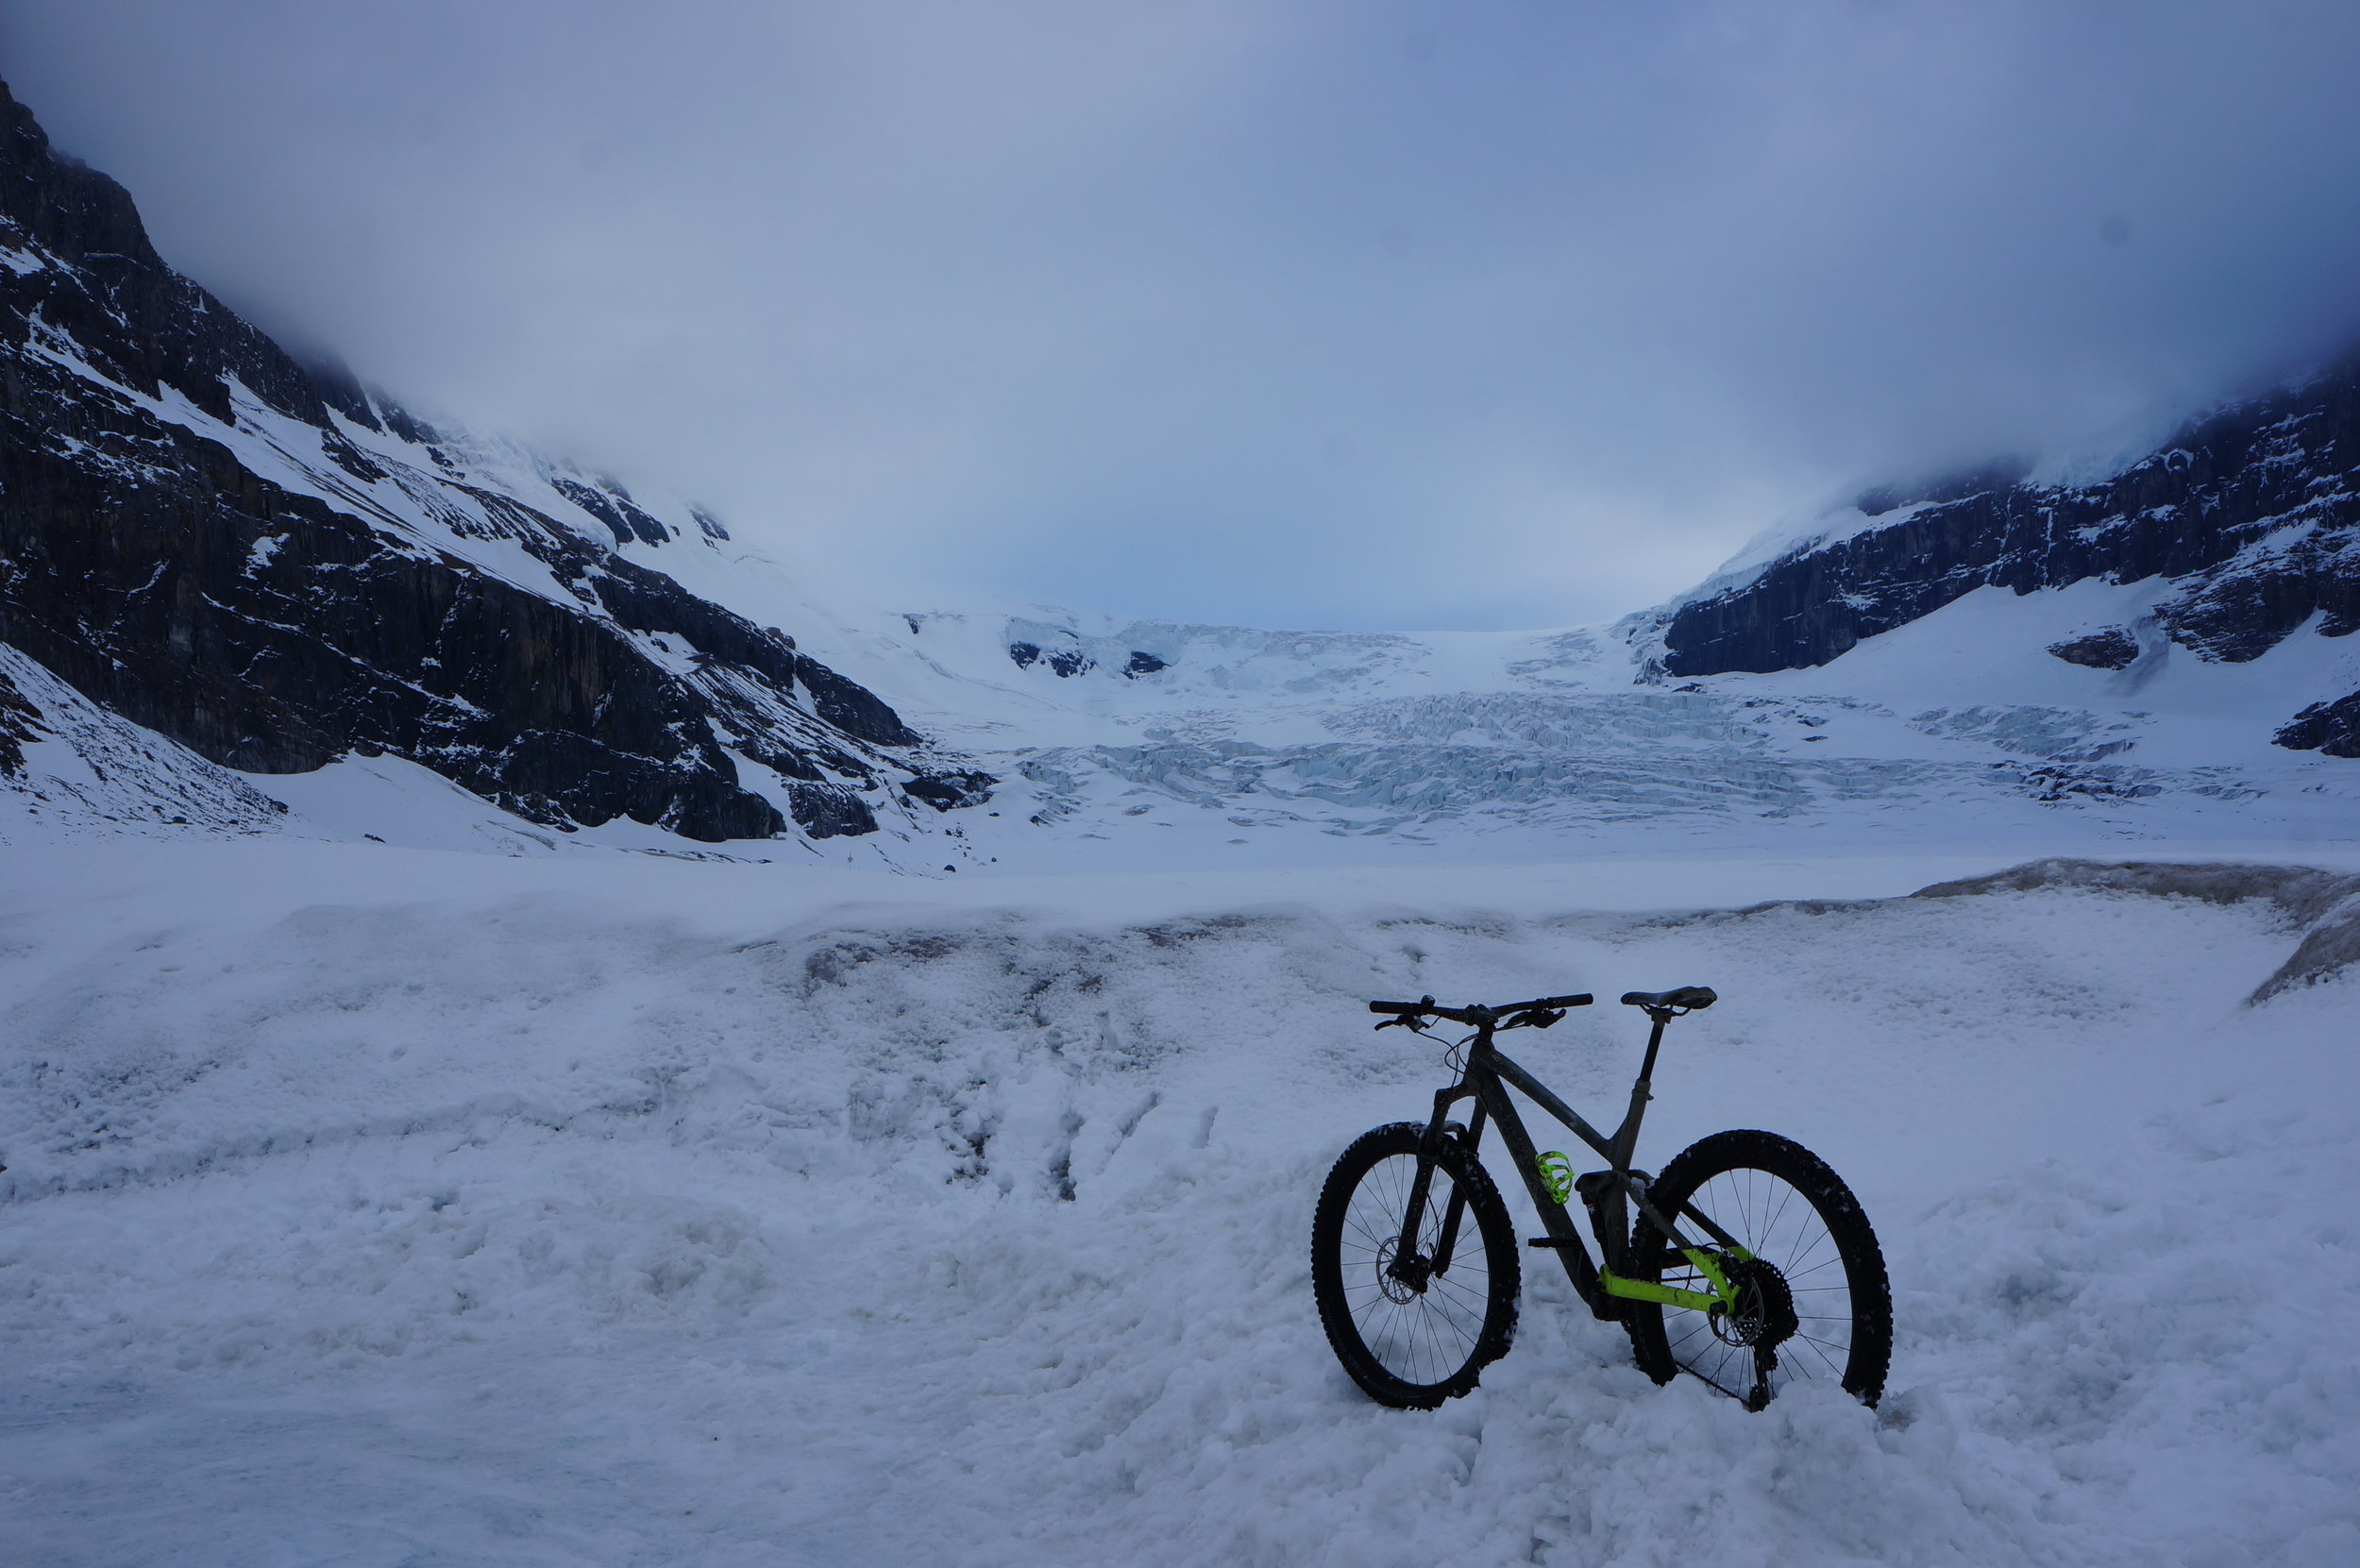 Chip snuck away one evening to mountain bike back up to the glacier! I won't tell you how fast he rode on the way down…on ice…